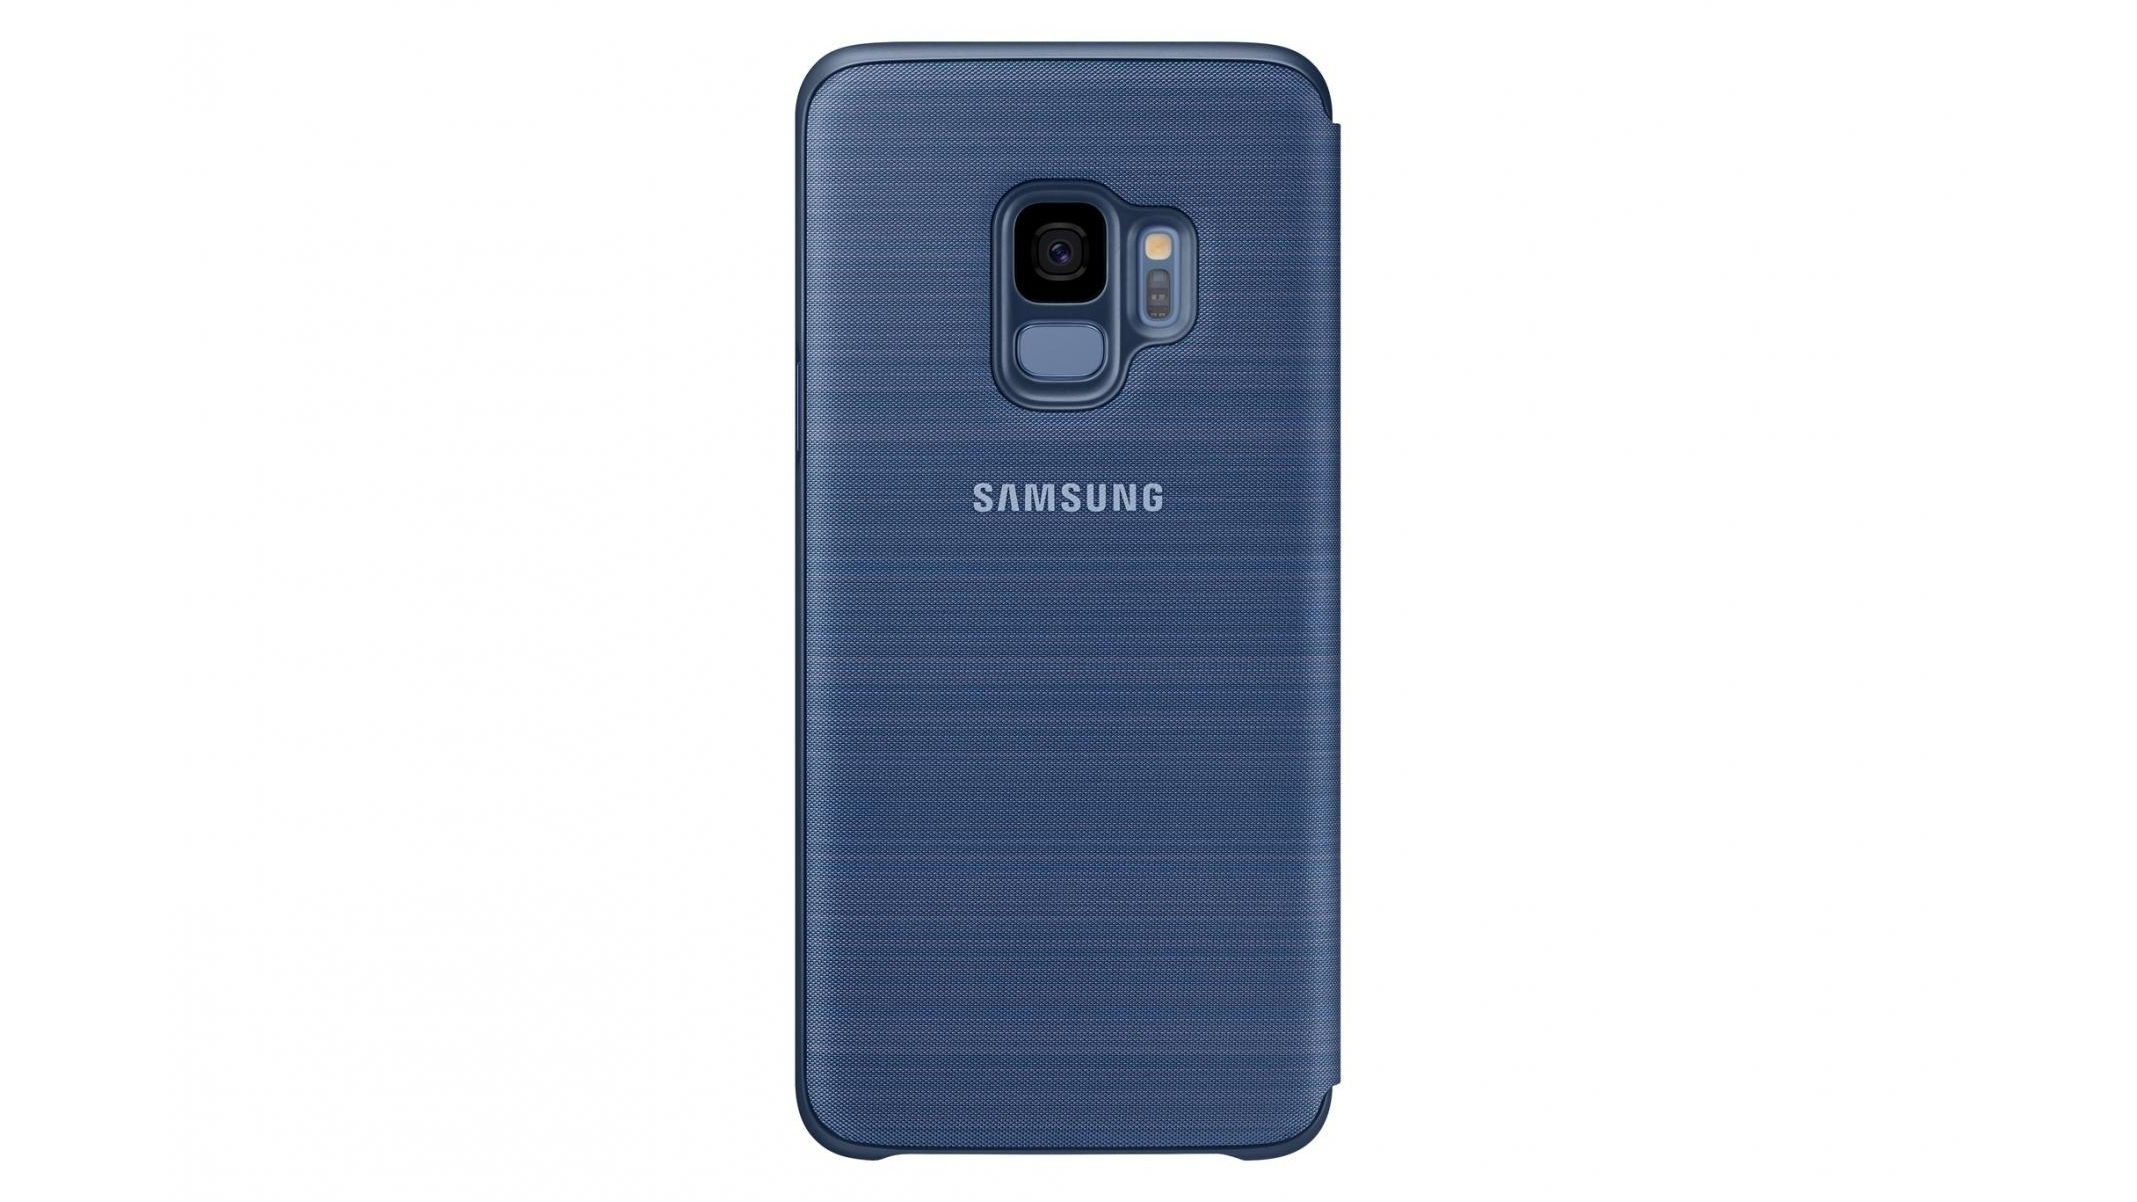 finest selection b02f3 aaacc Samsung Galaxy S9 LED View Cover - Blue